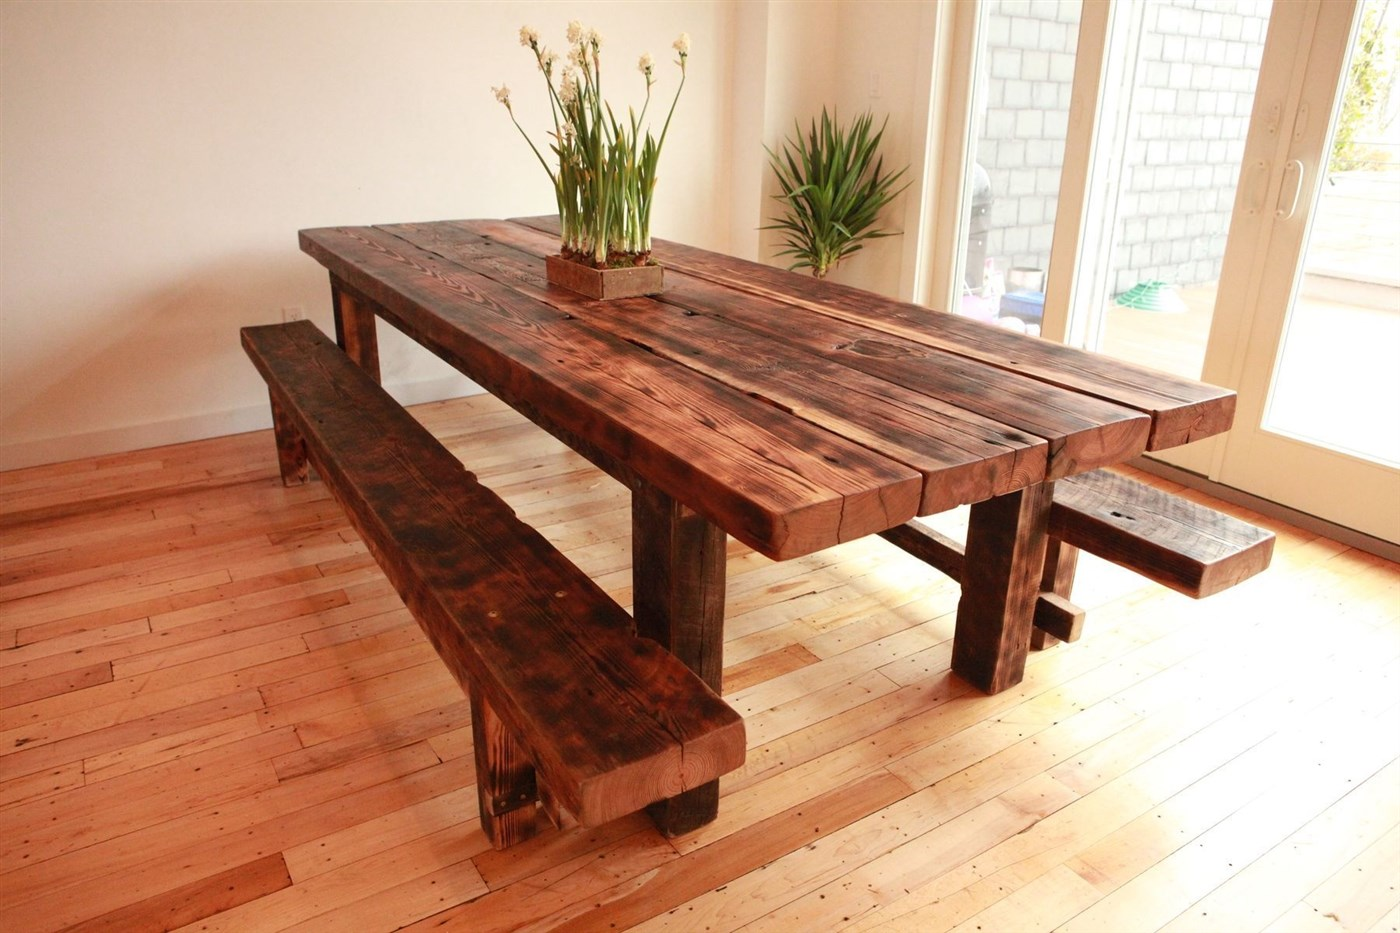 Wood rustic dining table design ideas